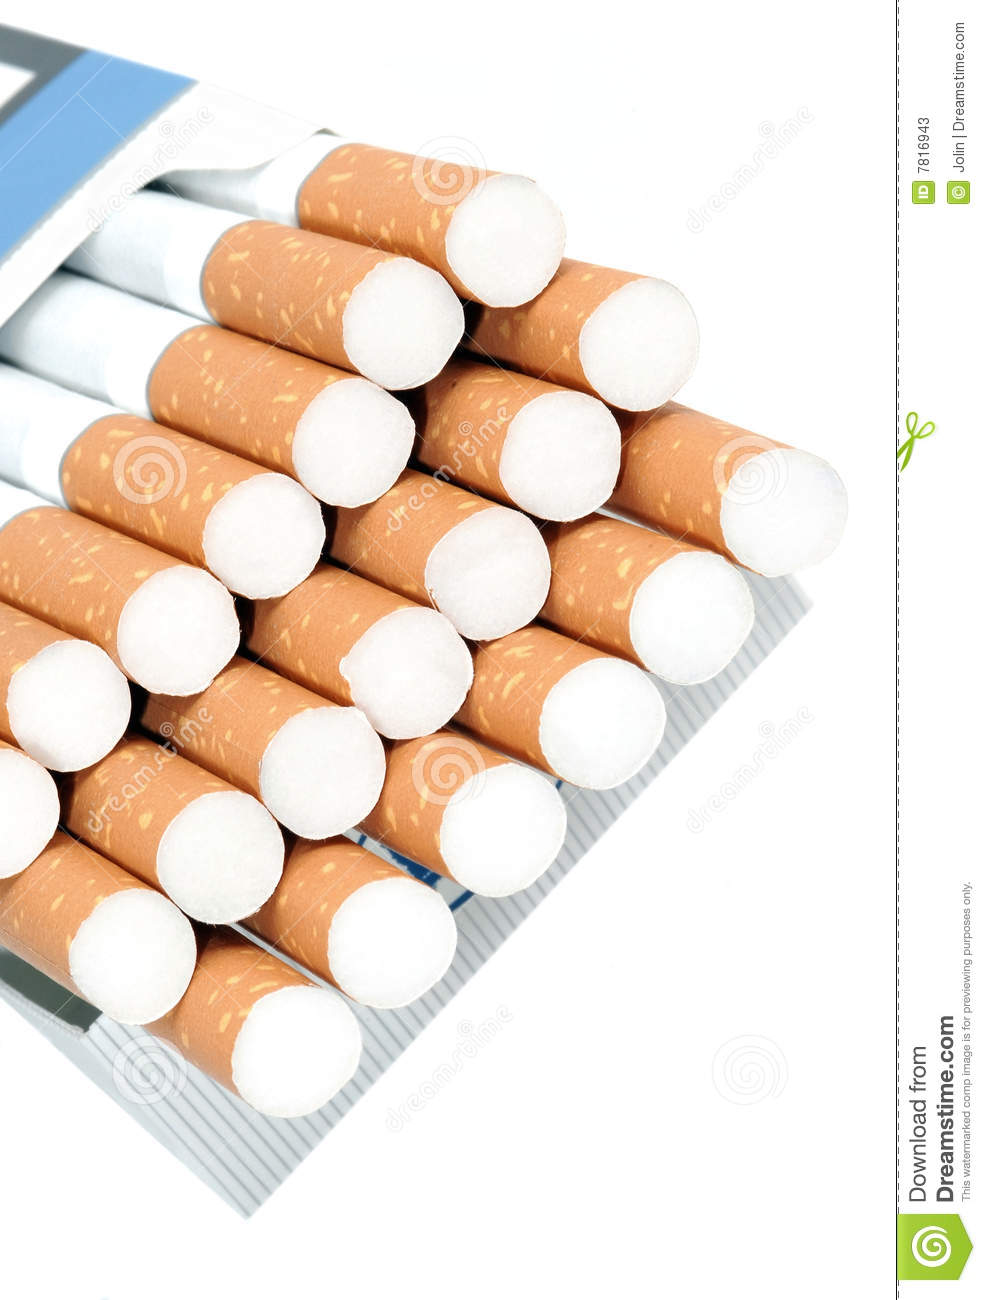 the life and a pack of cigarettes philosophy The life and a pack of cigarettes philosophy would eating a packet of cigarettes  be fatal up vote 37 down vote favorite 6 if a person ate one pack of cigarettes,.